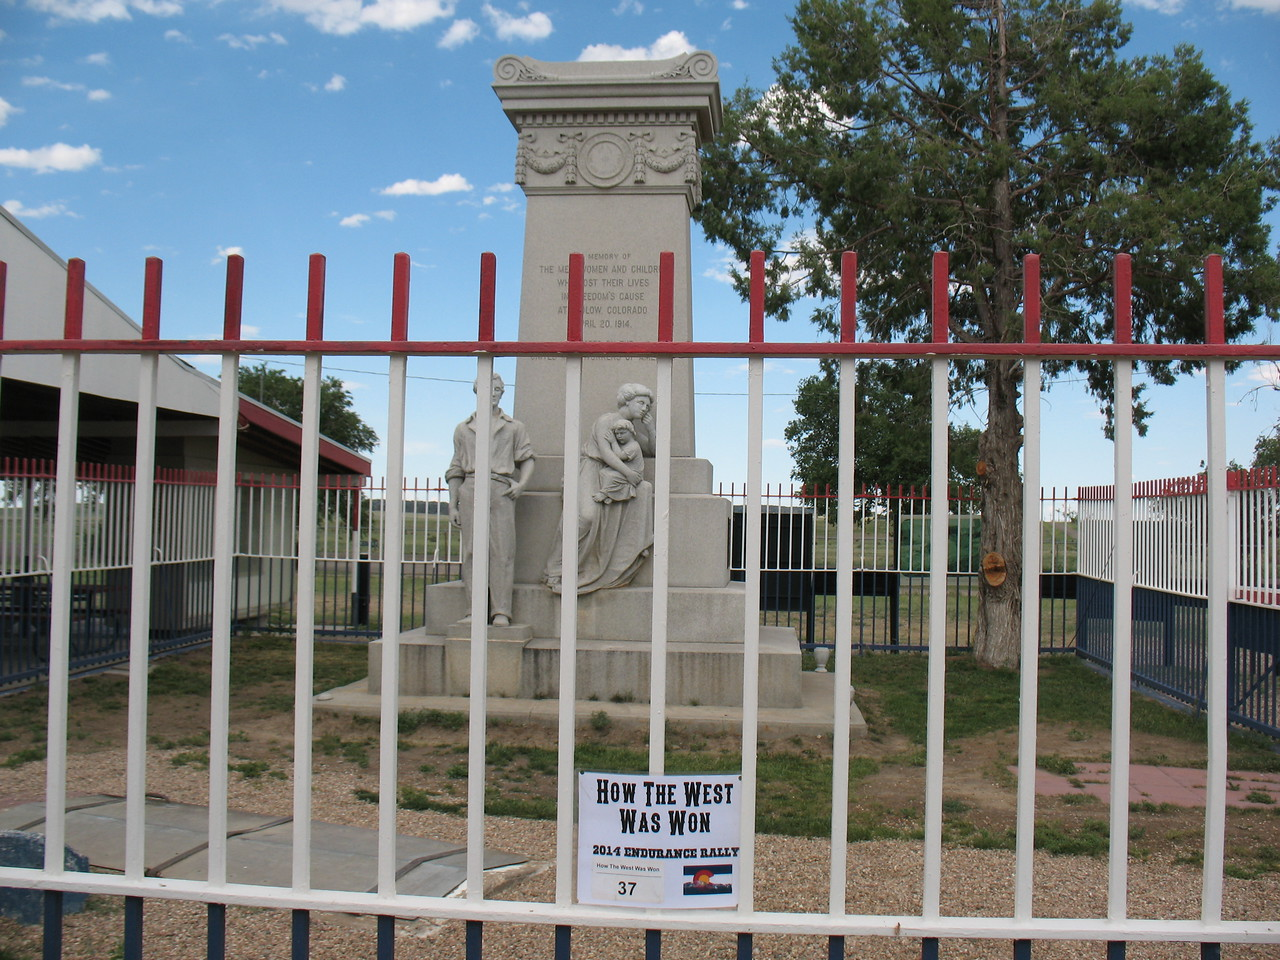 Monument to the Ludlow Massacre